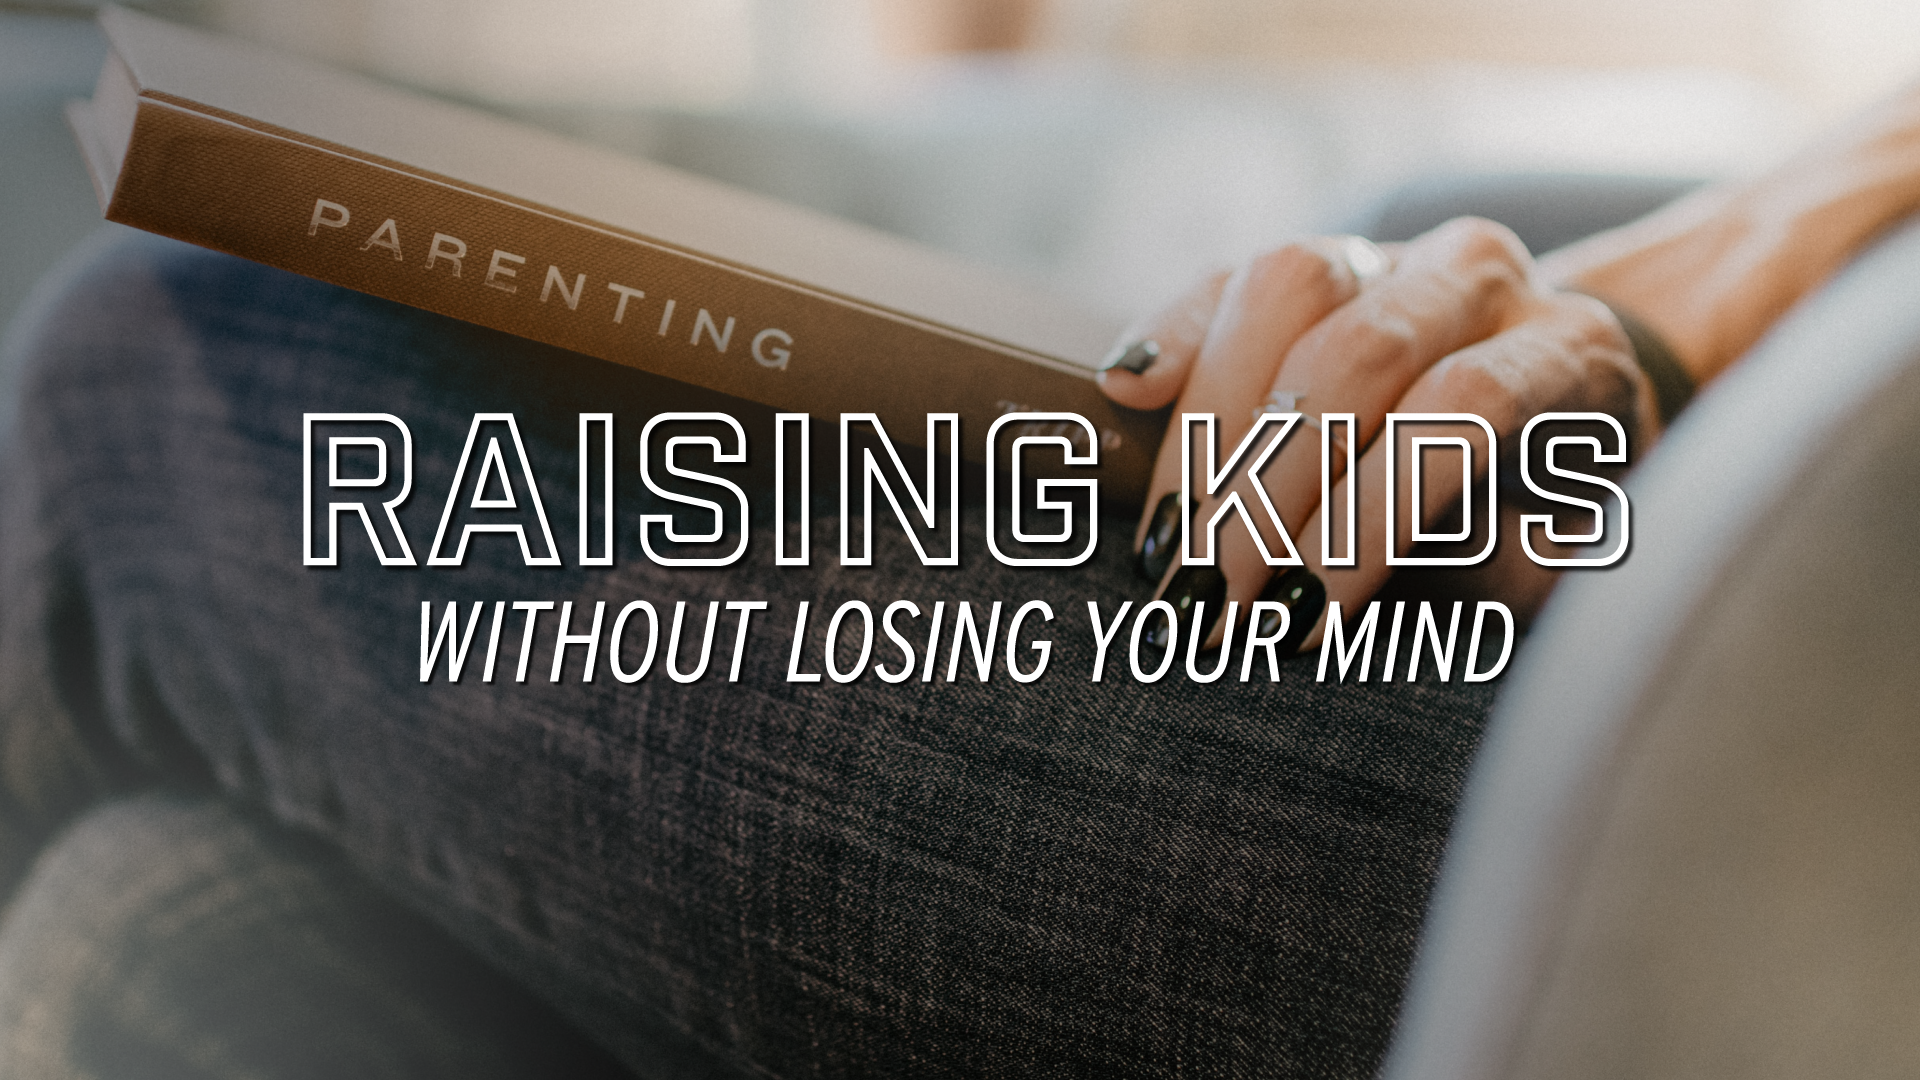 Parenting Workshop - Raising Kids Without Losing Your Mind